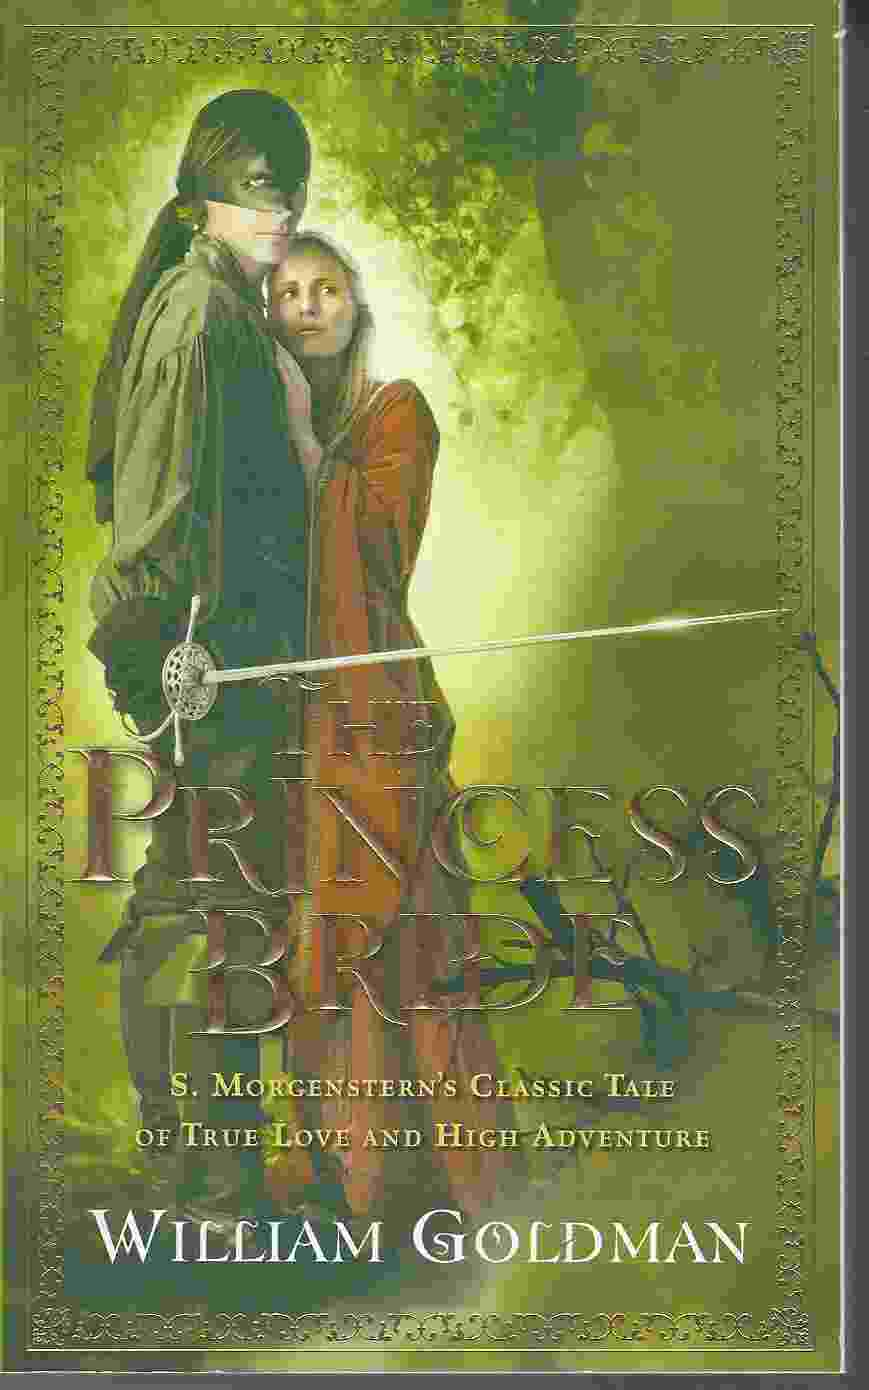 Image for THE PRINCESS BRIDE  S. Morgenstern's Classic Tale of True Love and High Adventure